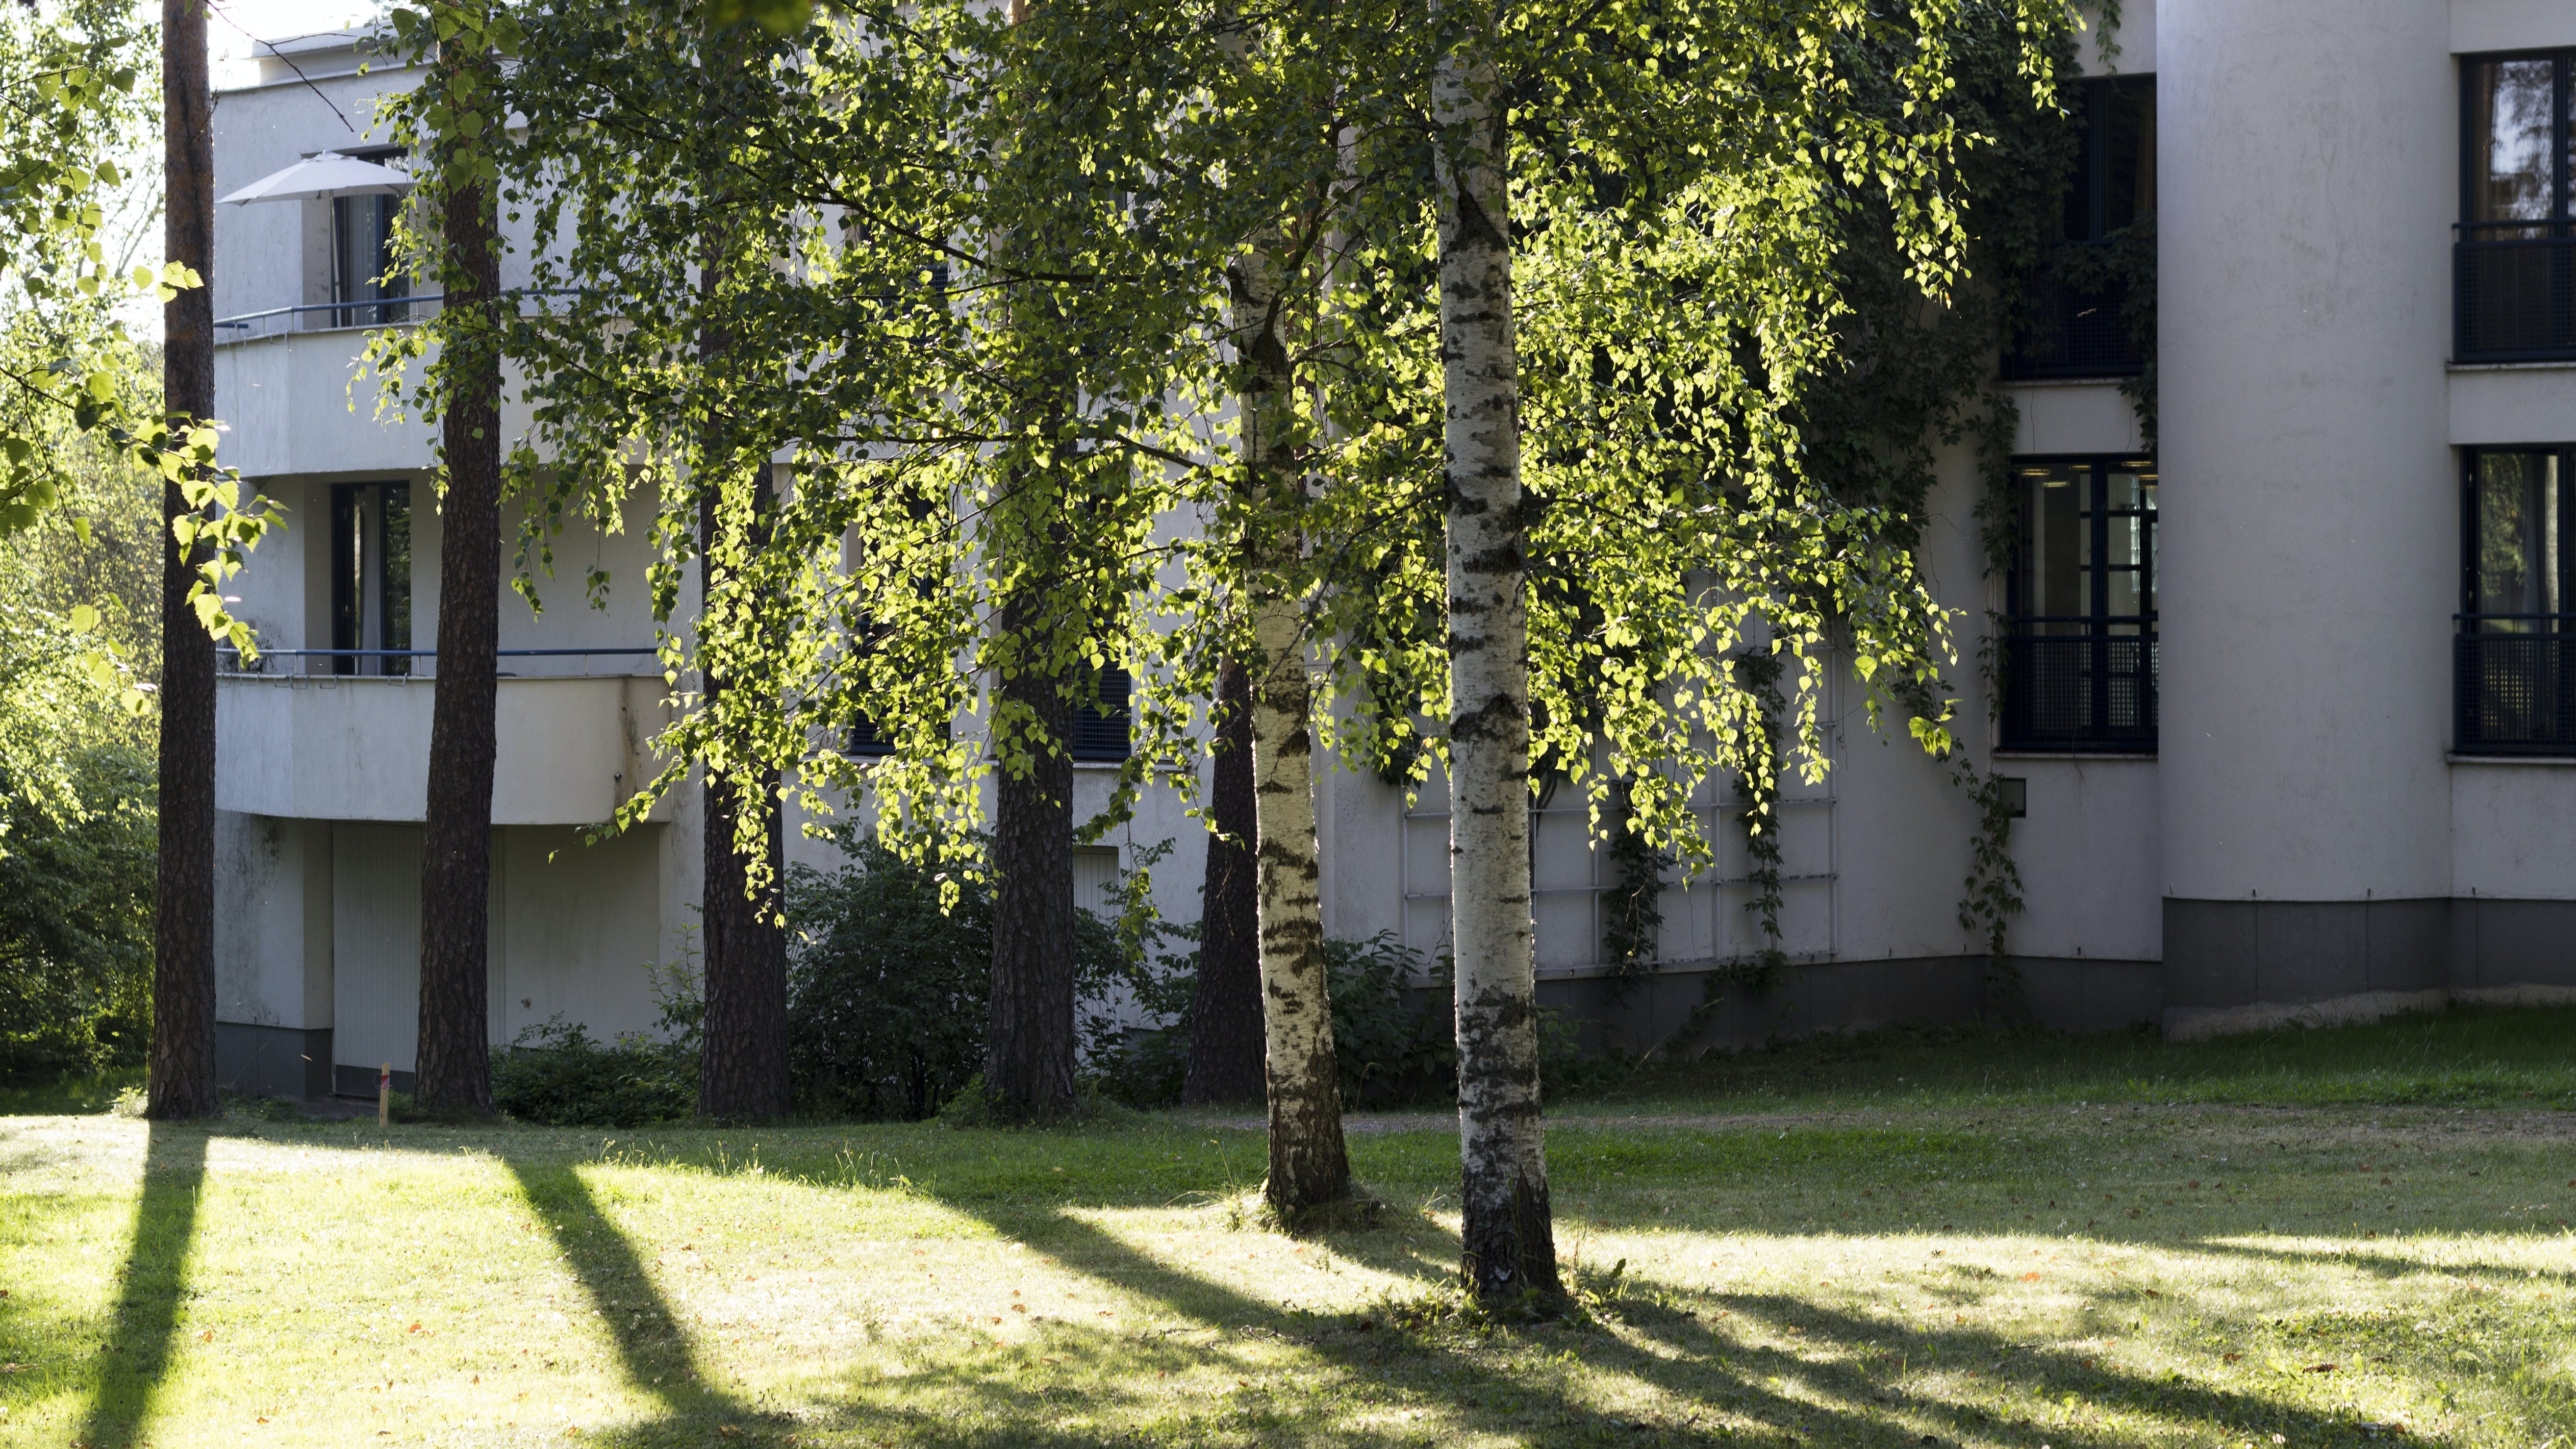 Birch Trees Beside the White Building